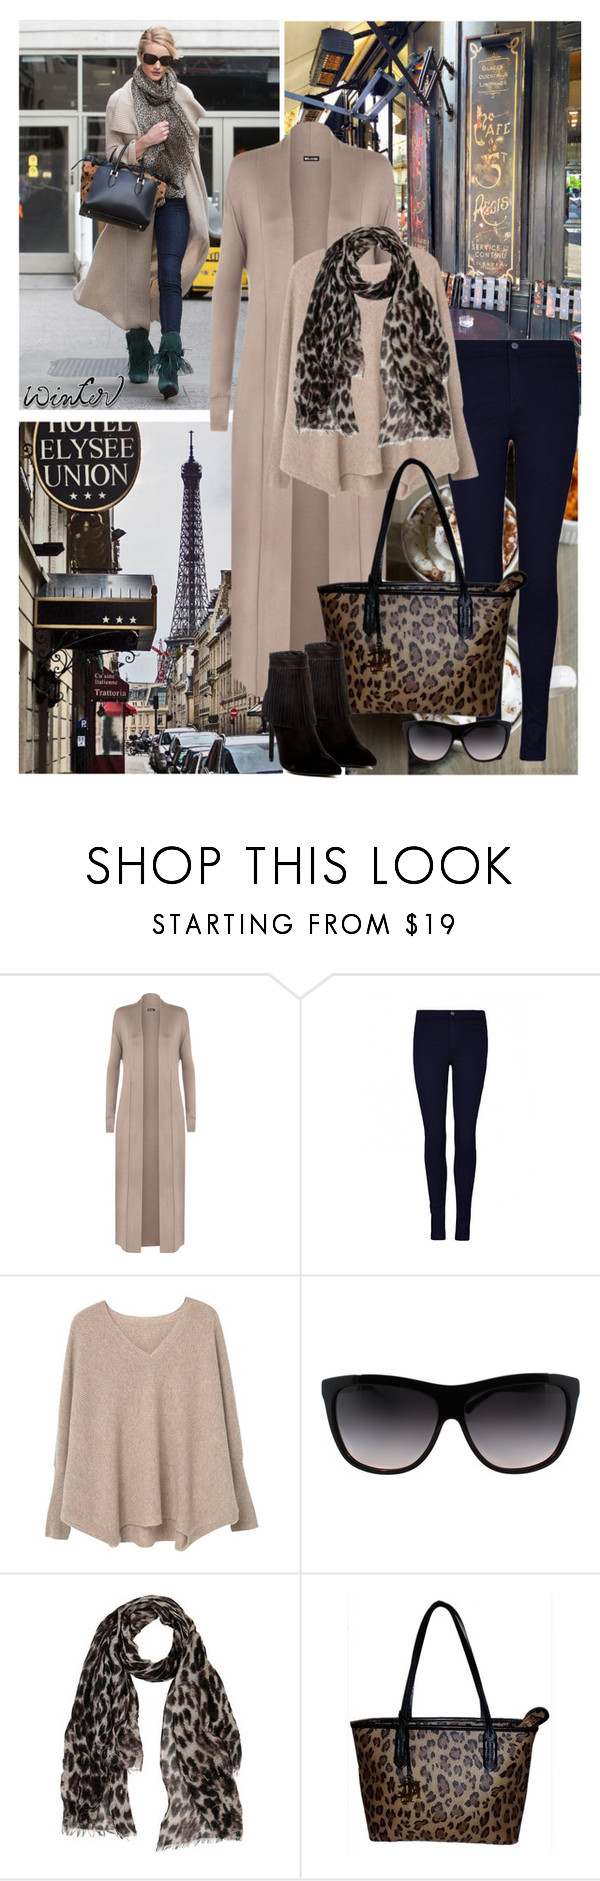 """""""Sweater Weather"""" by dezaval ❤ liked on Polyvore featuring Christian Dior, Whiteley, WearAll, MANGO, Michael Kors, Warehouse, Ralph Lauren and ALDO"""